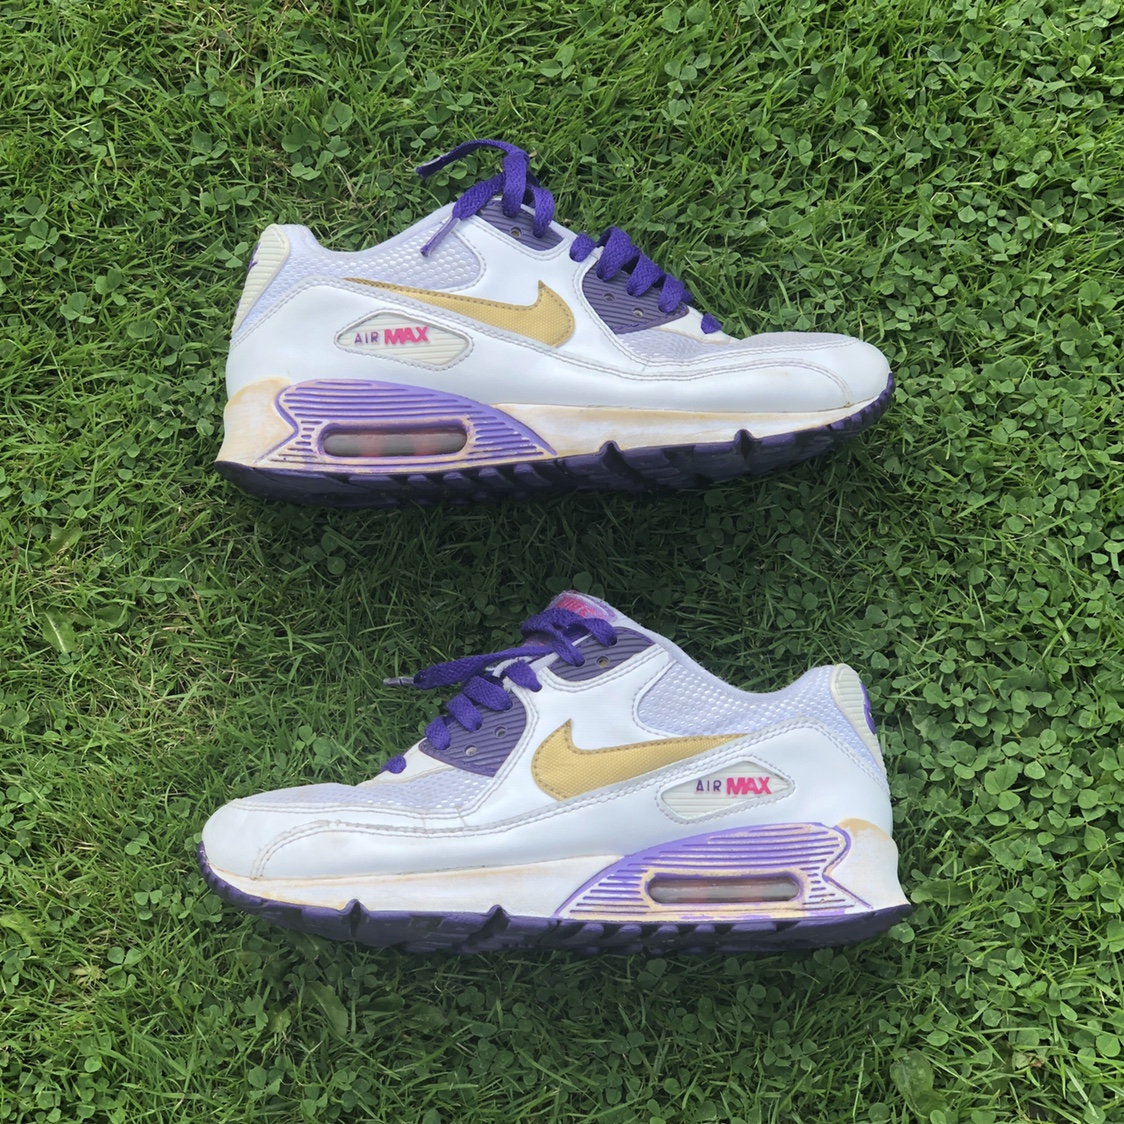 NIKE AIR MAX 90 WHITE, PURPLE AND GOLD